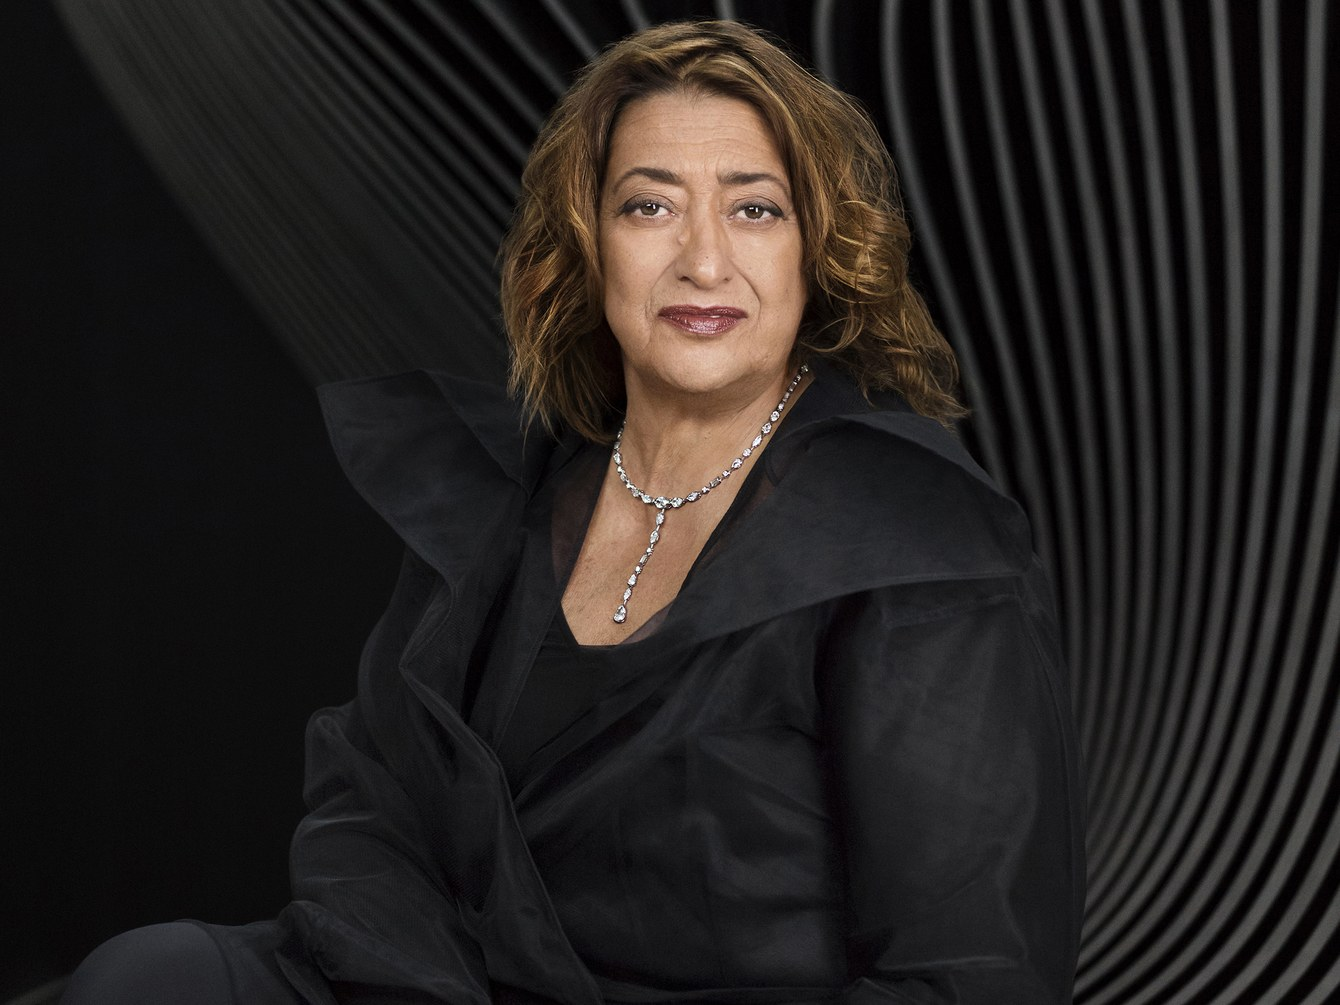 Architect Zaha Hadid Has Died at 65